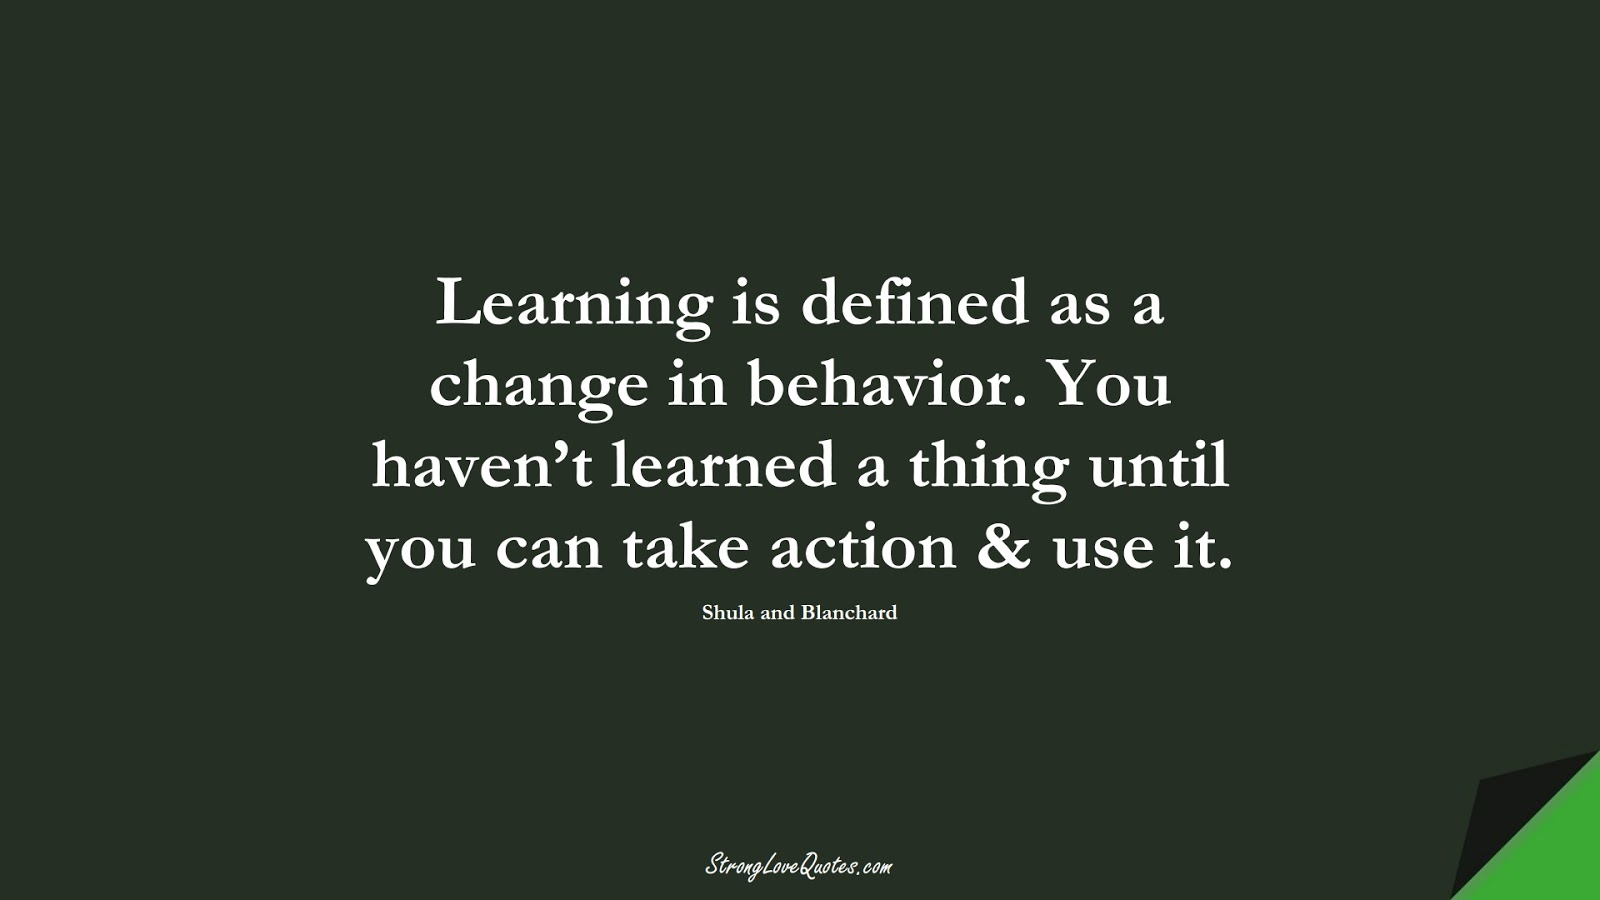 Learning is defined as a change in behavior. You haven't learned a thing until you can take action & use it. (Shula and Blanchard);  #LearningQuotes